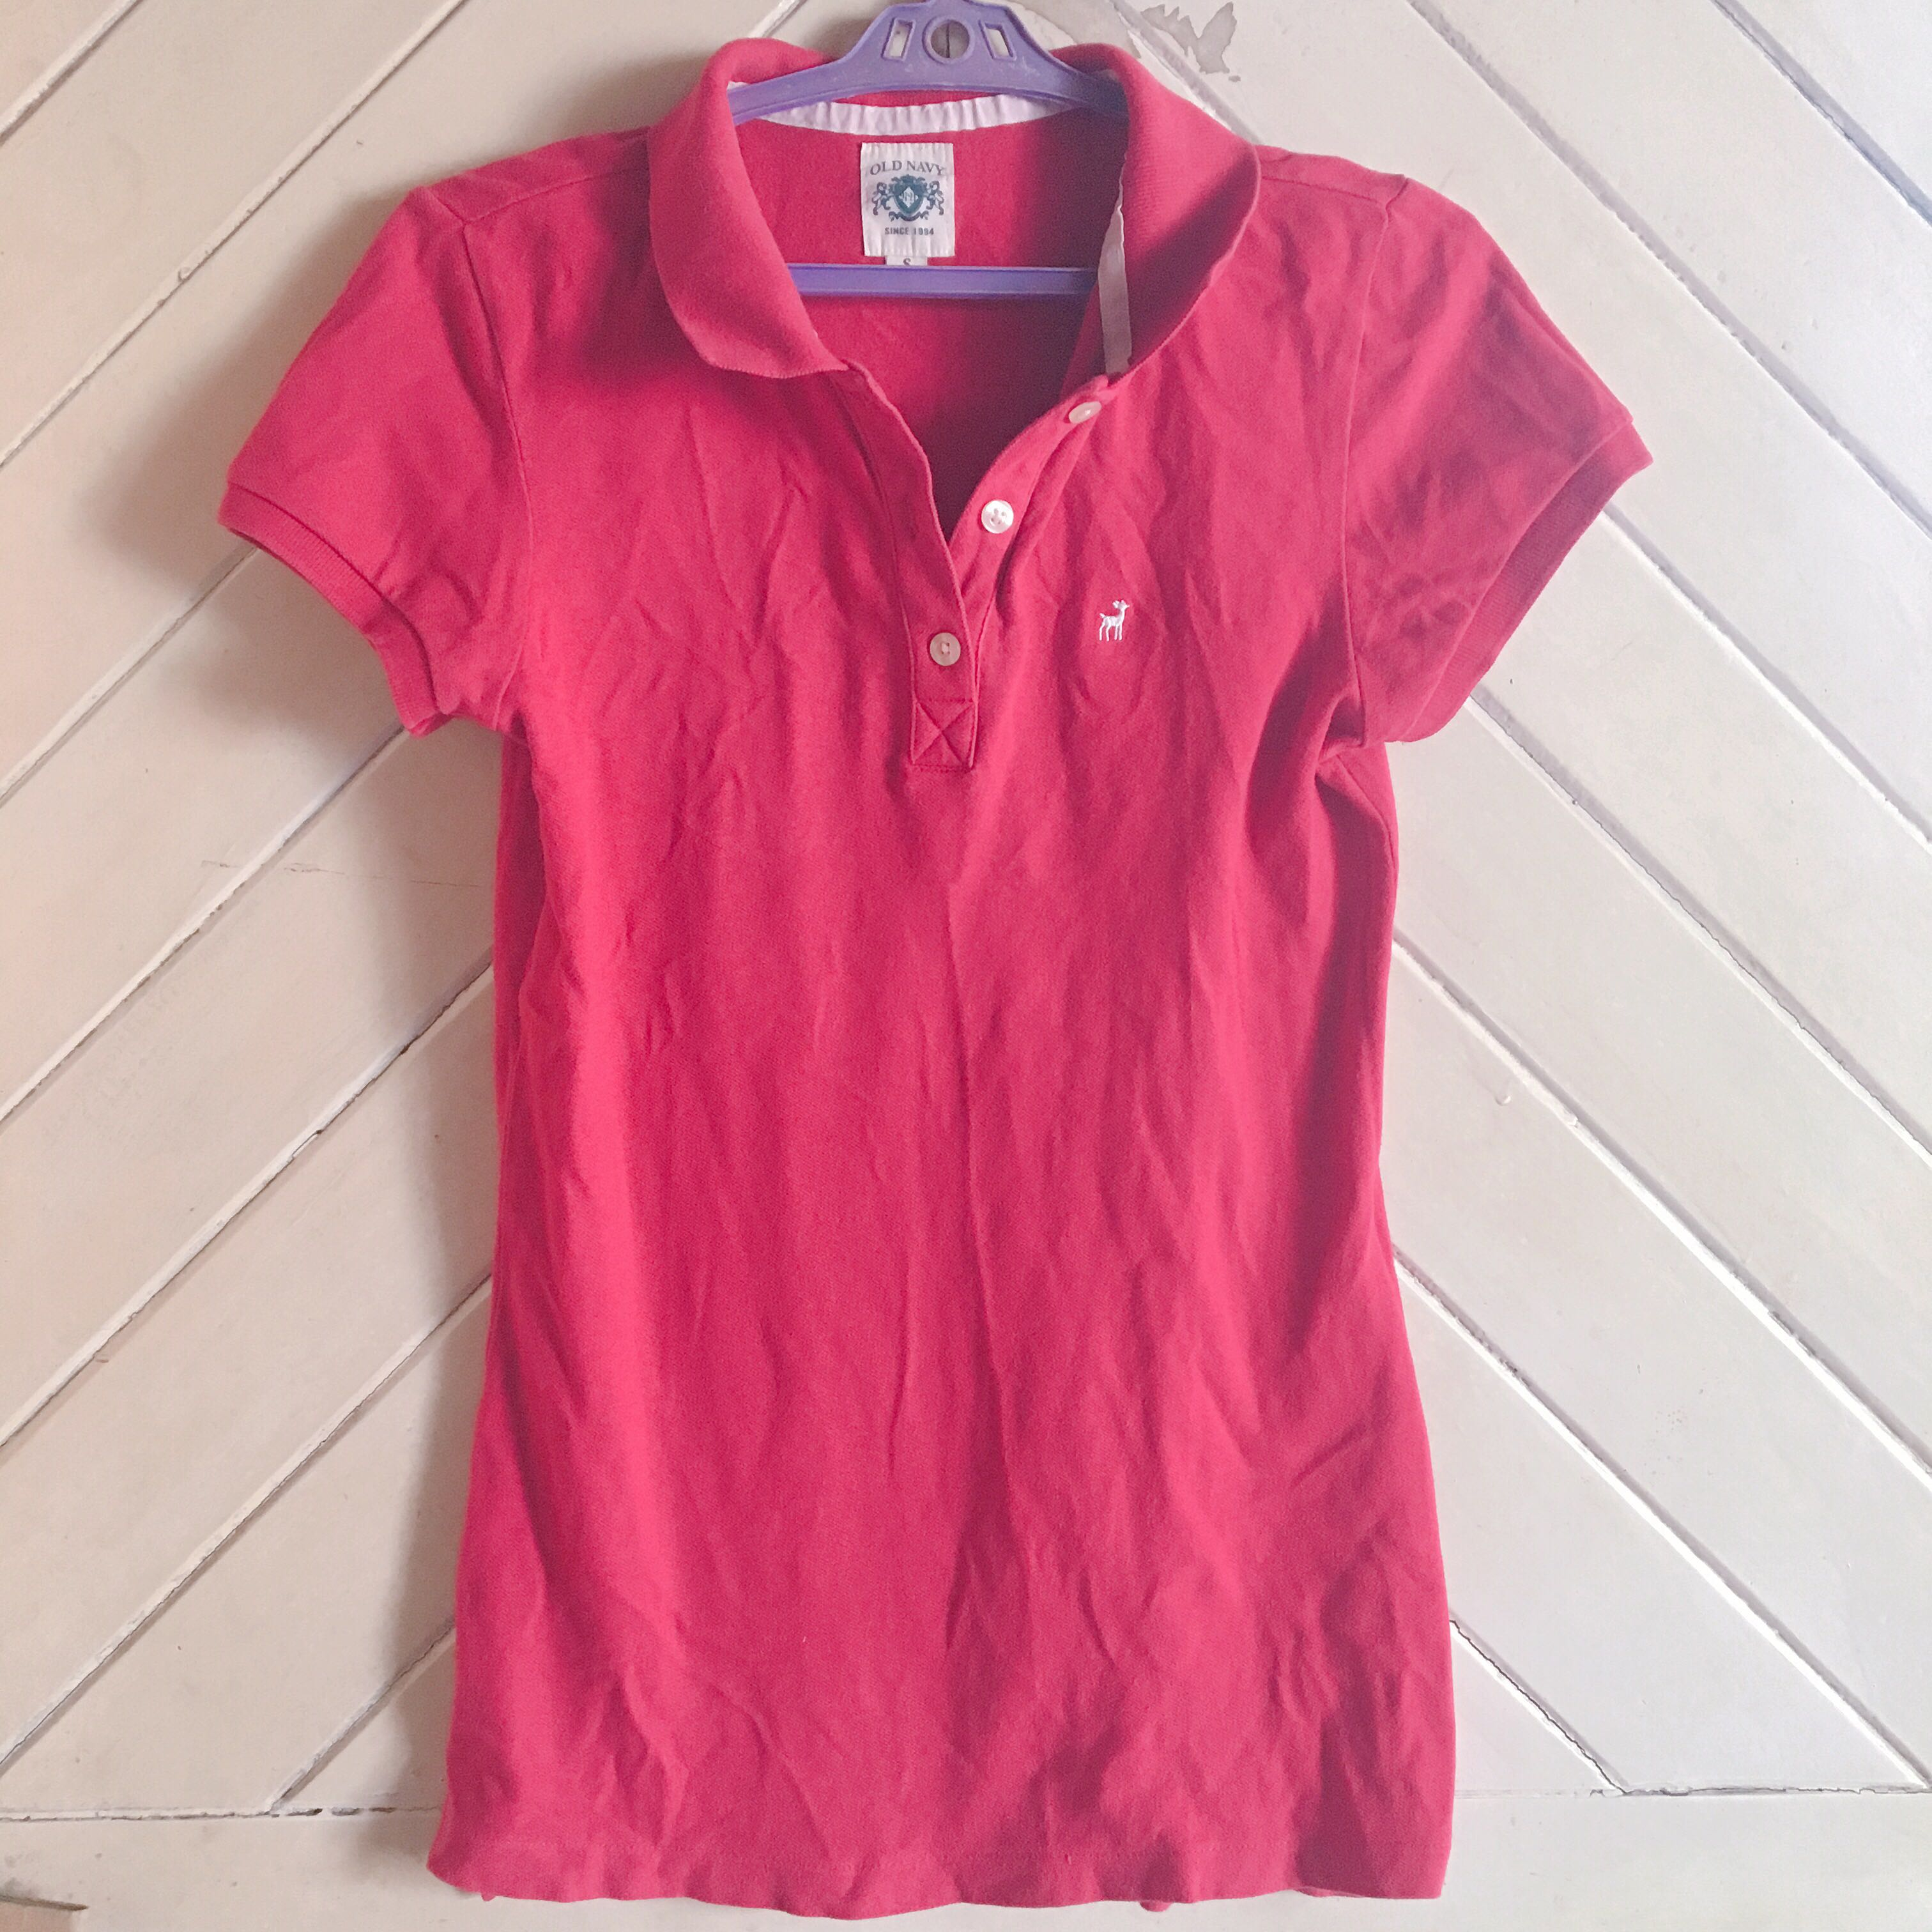 0779c76770d5 Pink Polo Shirts Old Navy - DREAMWORKS